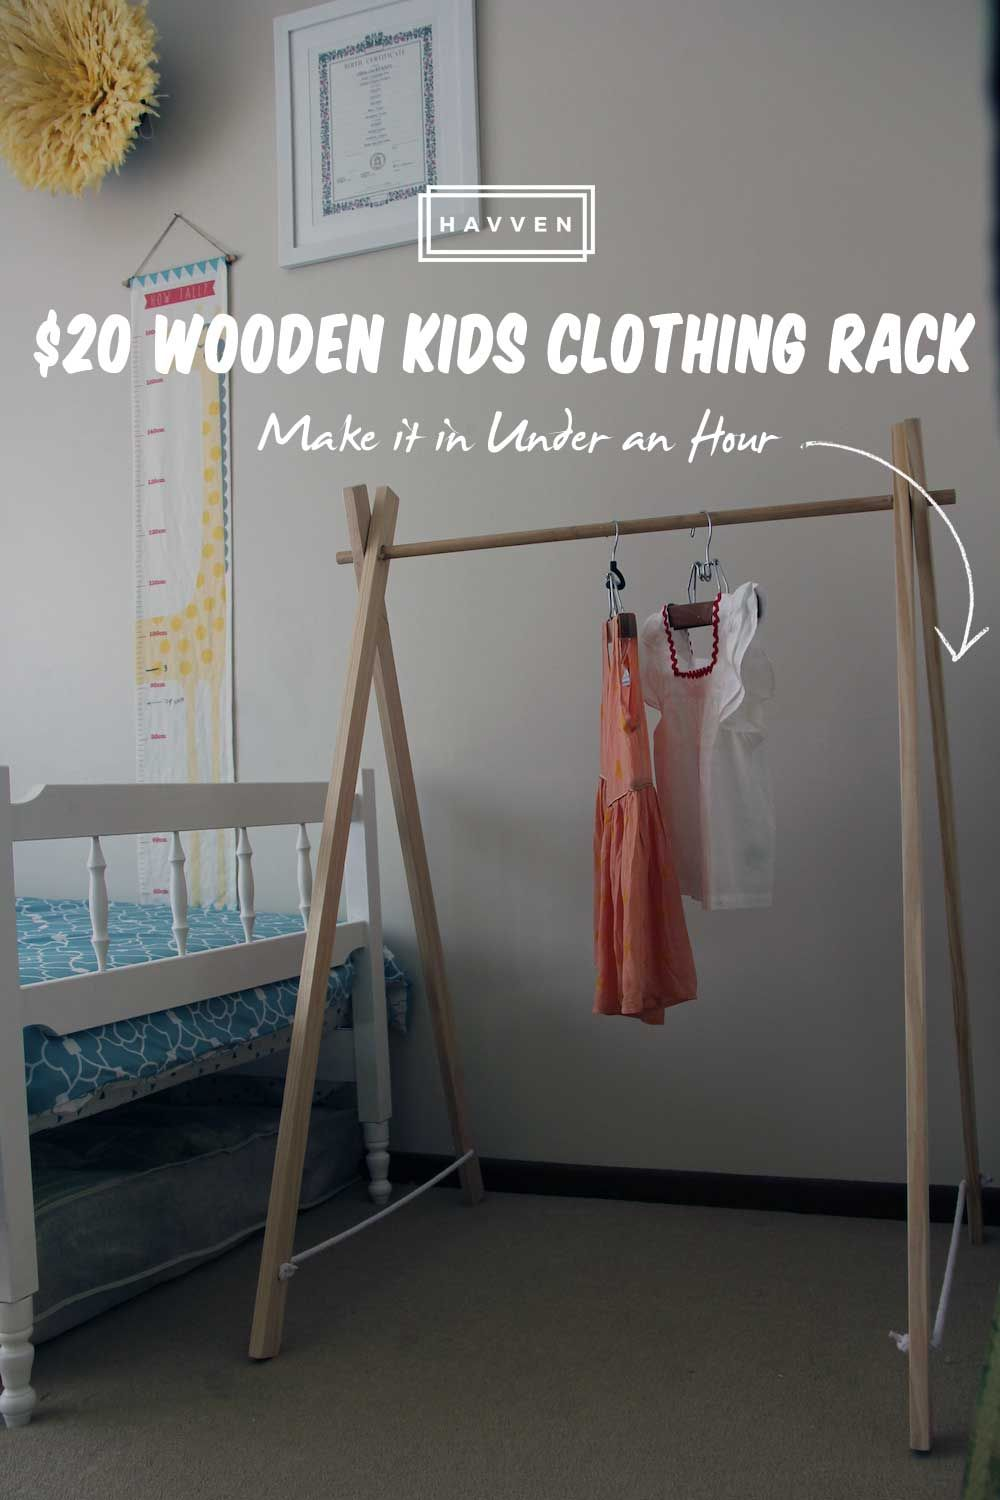 Design Diy Clothes Rack diy 20 wooden kids clothing rack make in under an hour clothes hour